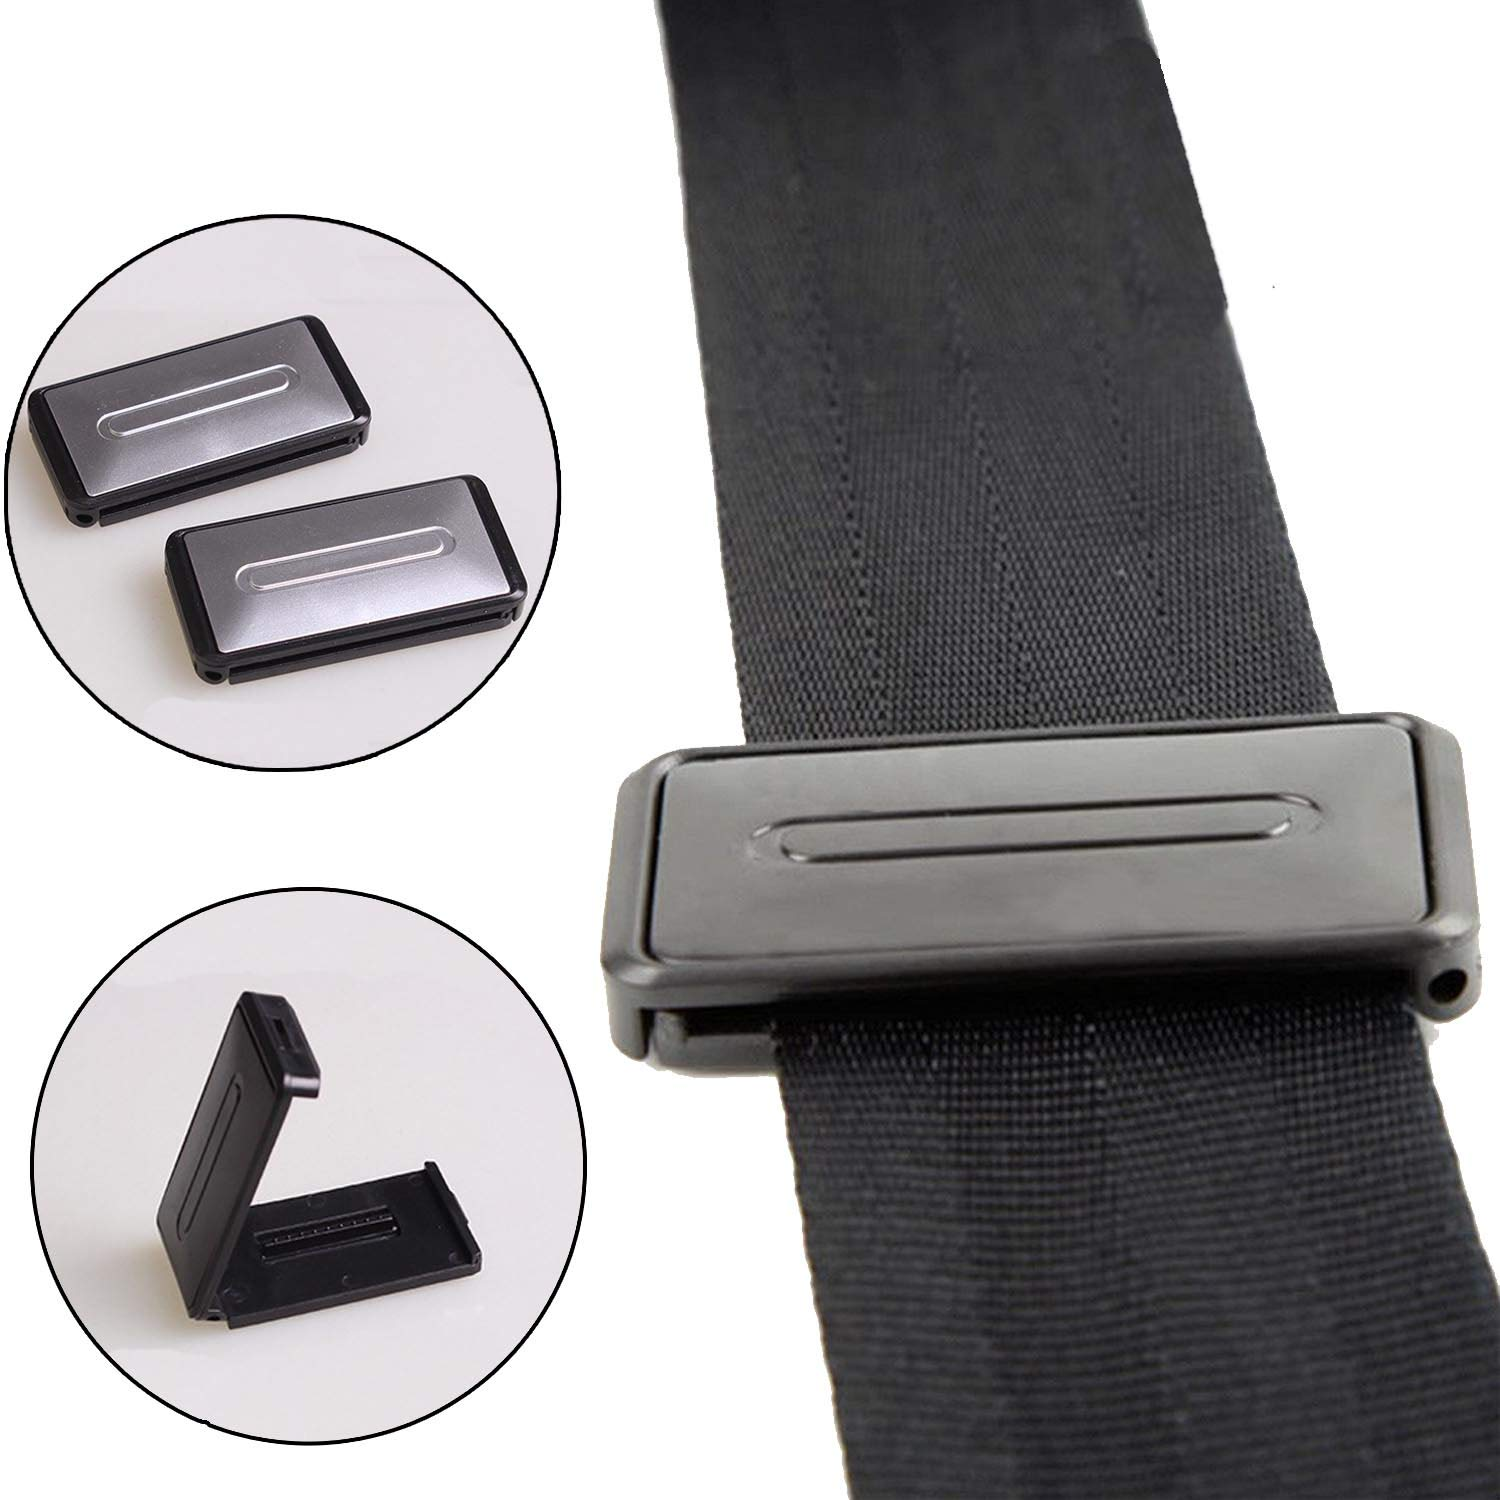 Safe Seatbelt Clips with Comfort Supports to Relax Shoulder and Neck for Any Car Seatbelt 4 PCS Car Seat Belt Adjuster